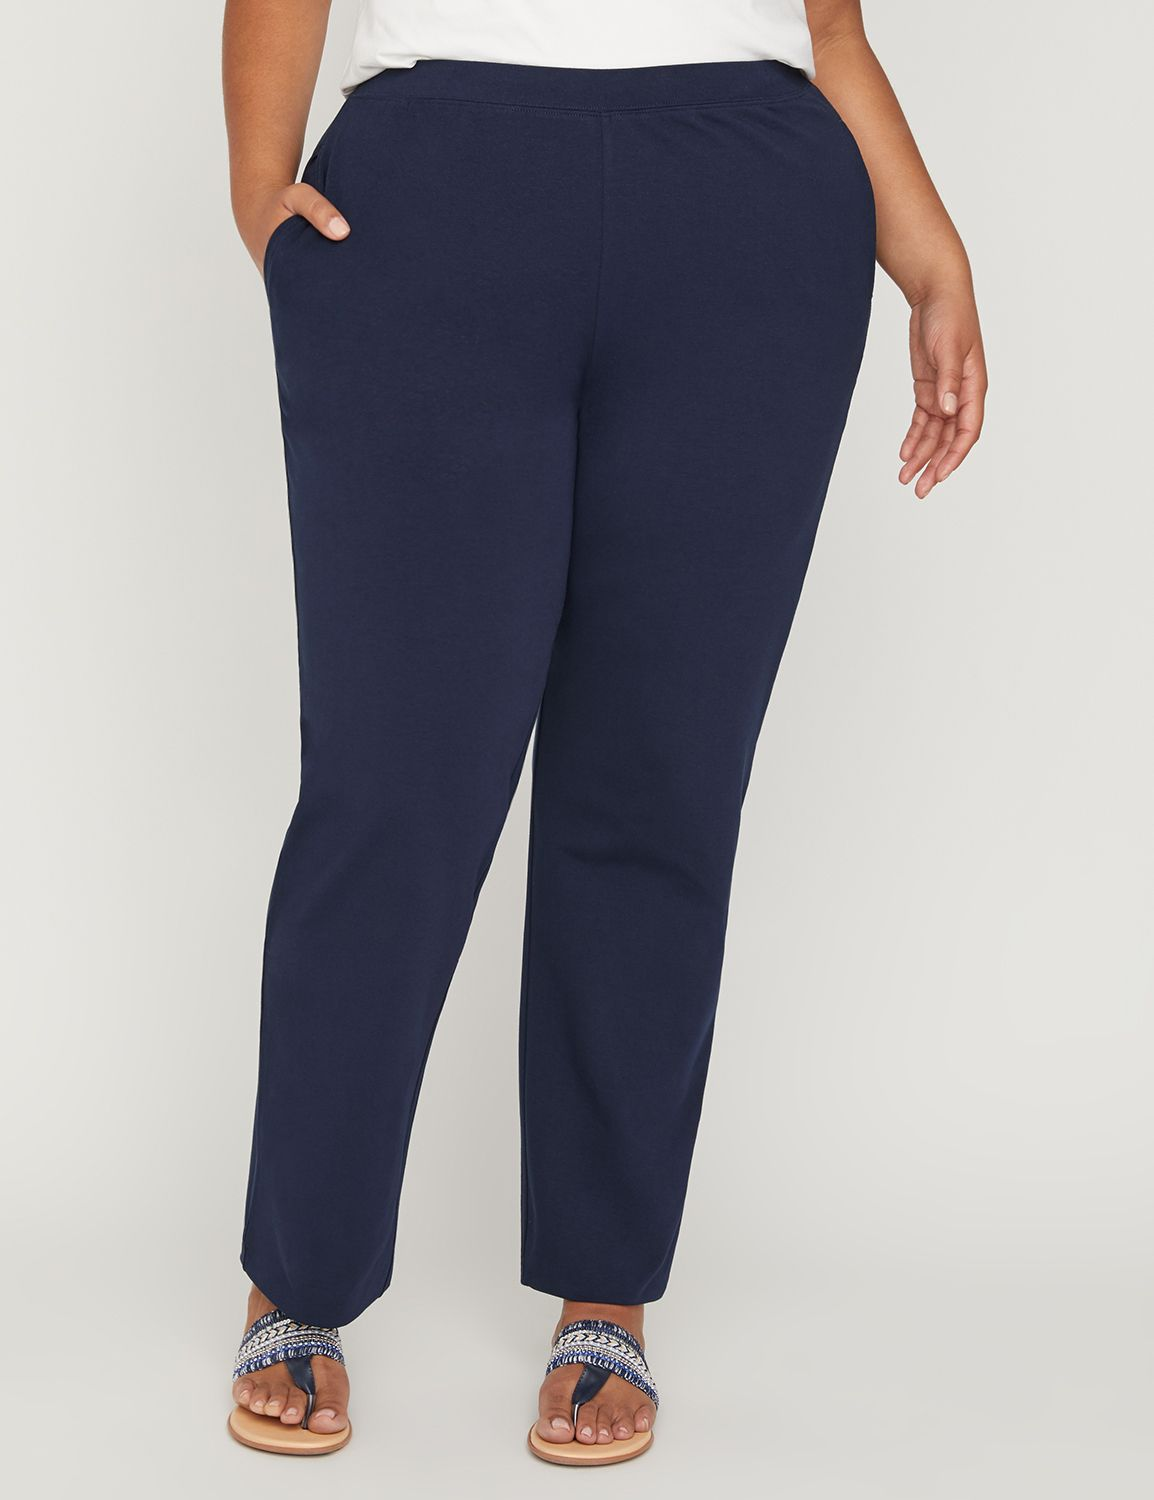 Suprema Knit Pant (Classic Colors) Suprema Knit Pant (Classic Colors) MP-300009657